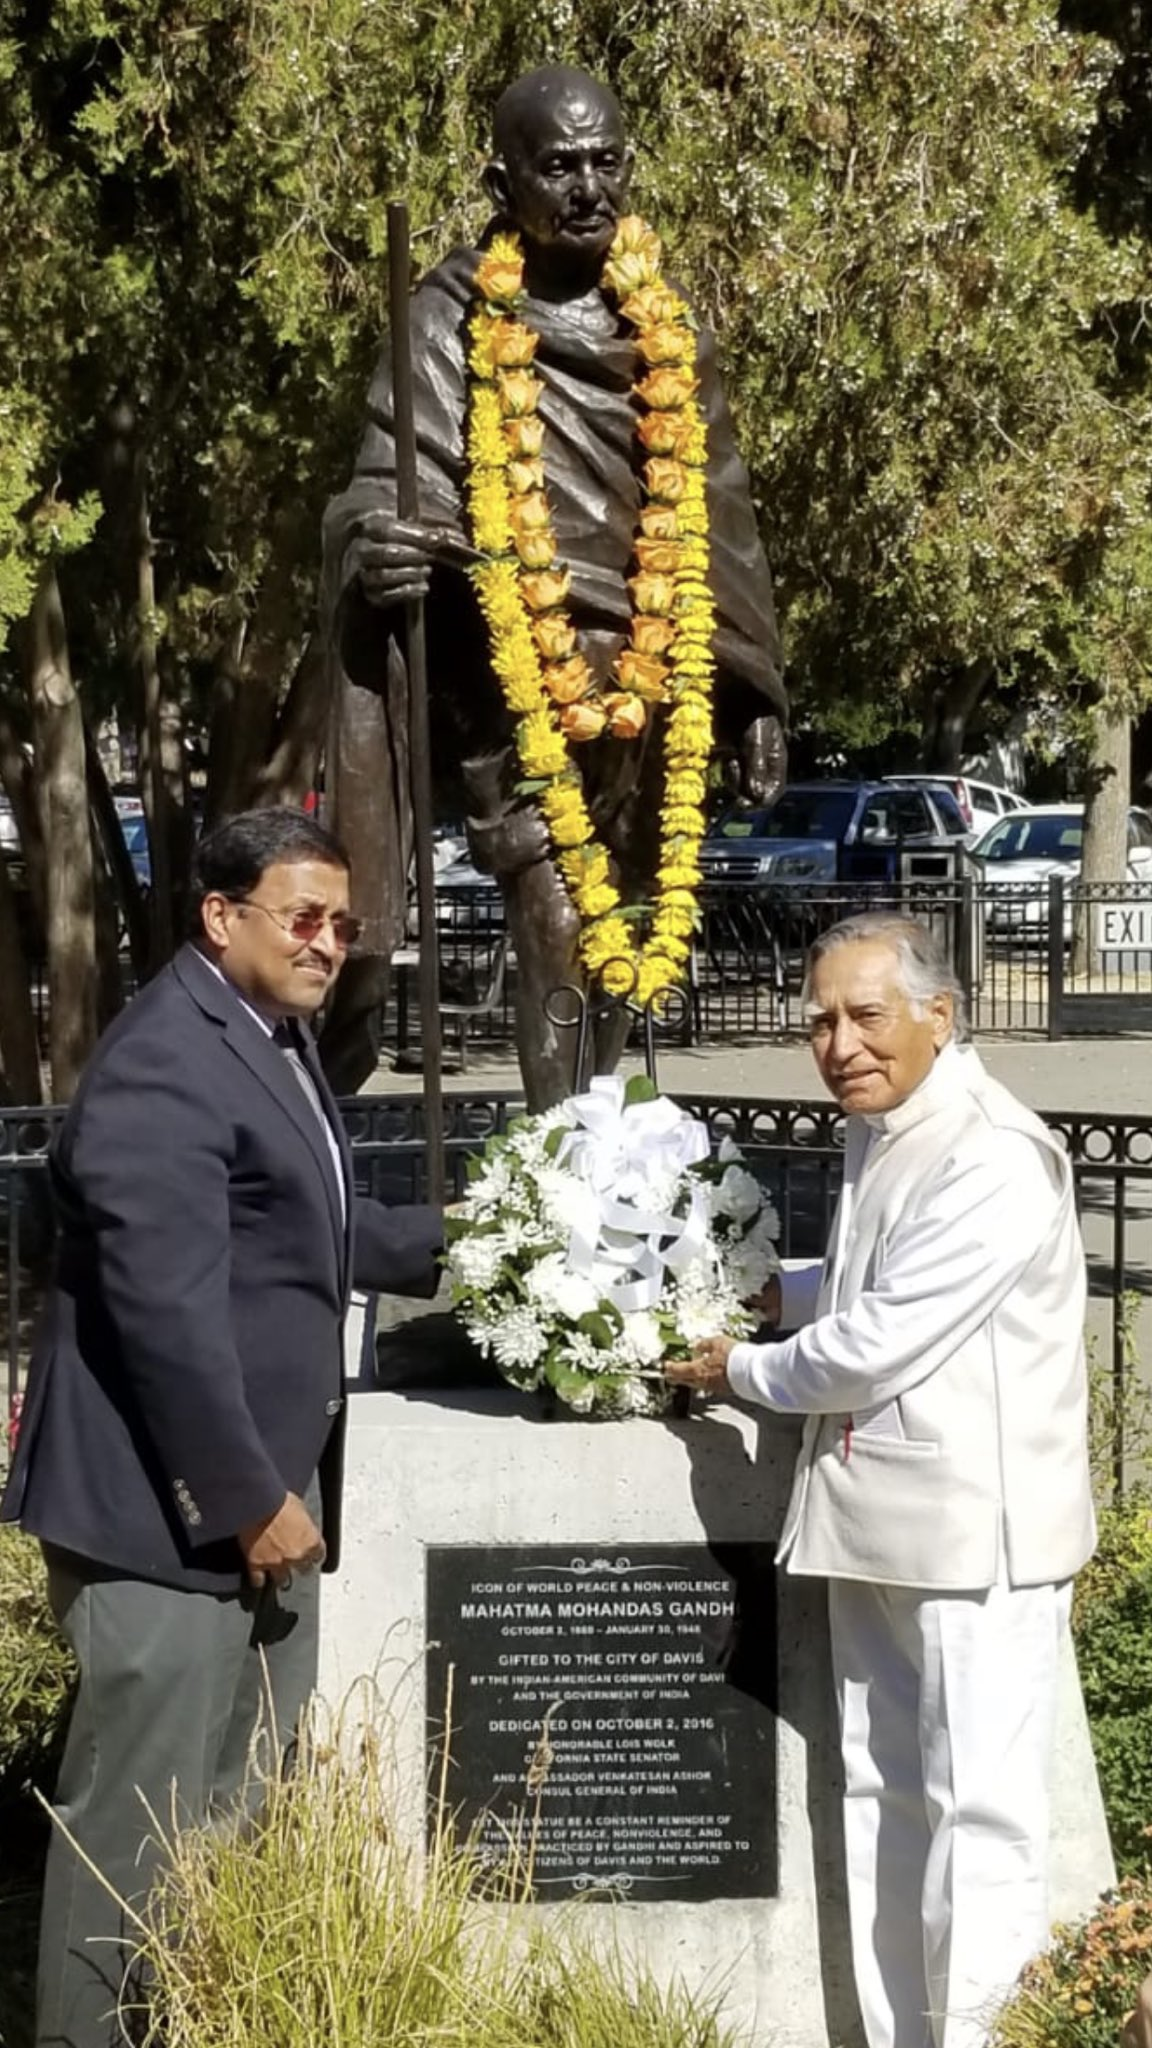 City of Davis pays tribute to Mahatma Gandhi with celebrations spearheaded by The Gandhi Statue for Peace Committee to commemorate